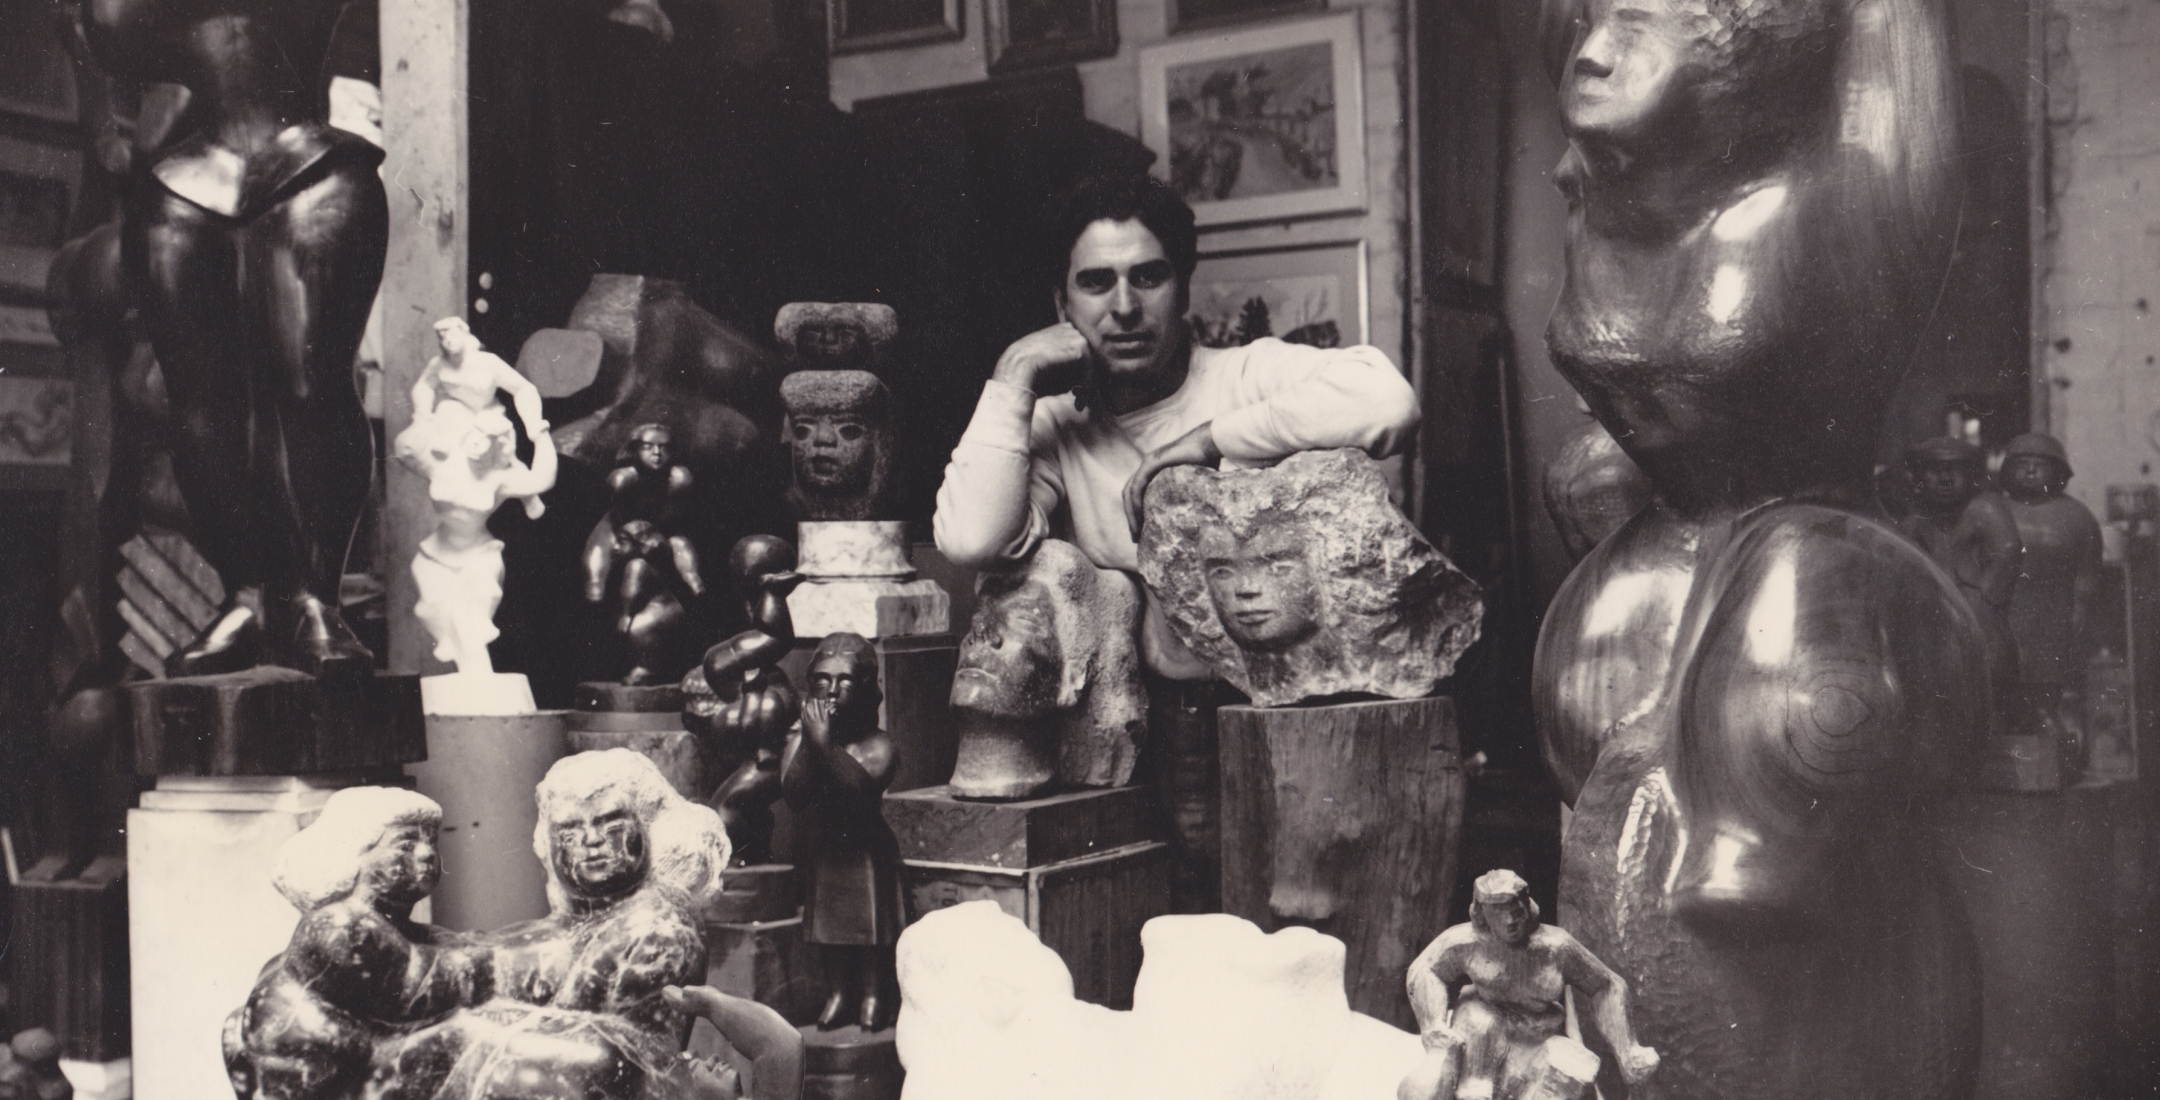 The award-winning HIstoric Home, studio and art collections of sculptor Chaim Gross in the heart of Greenwich Village